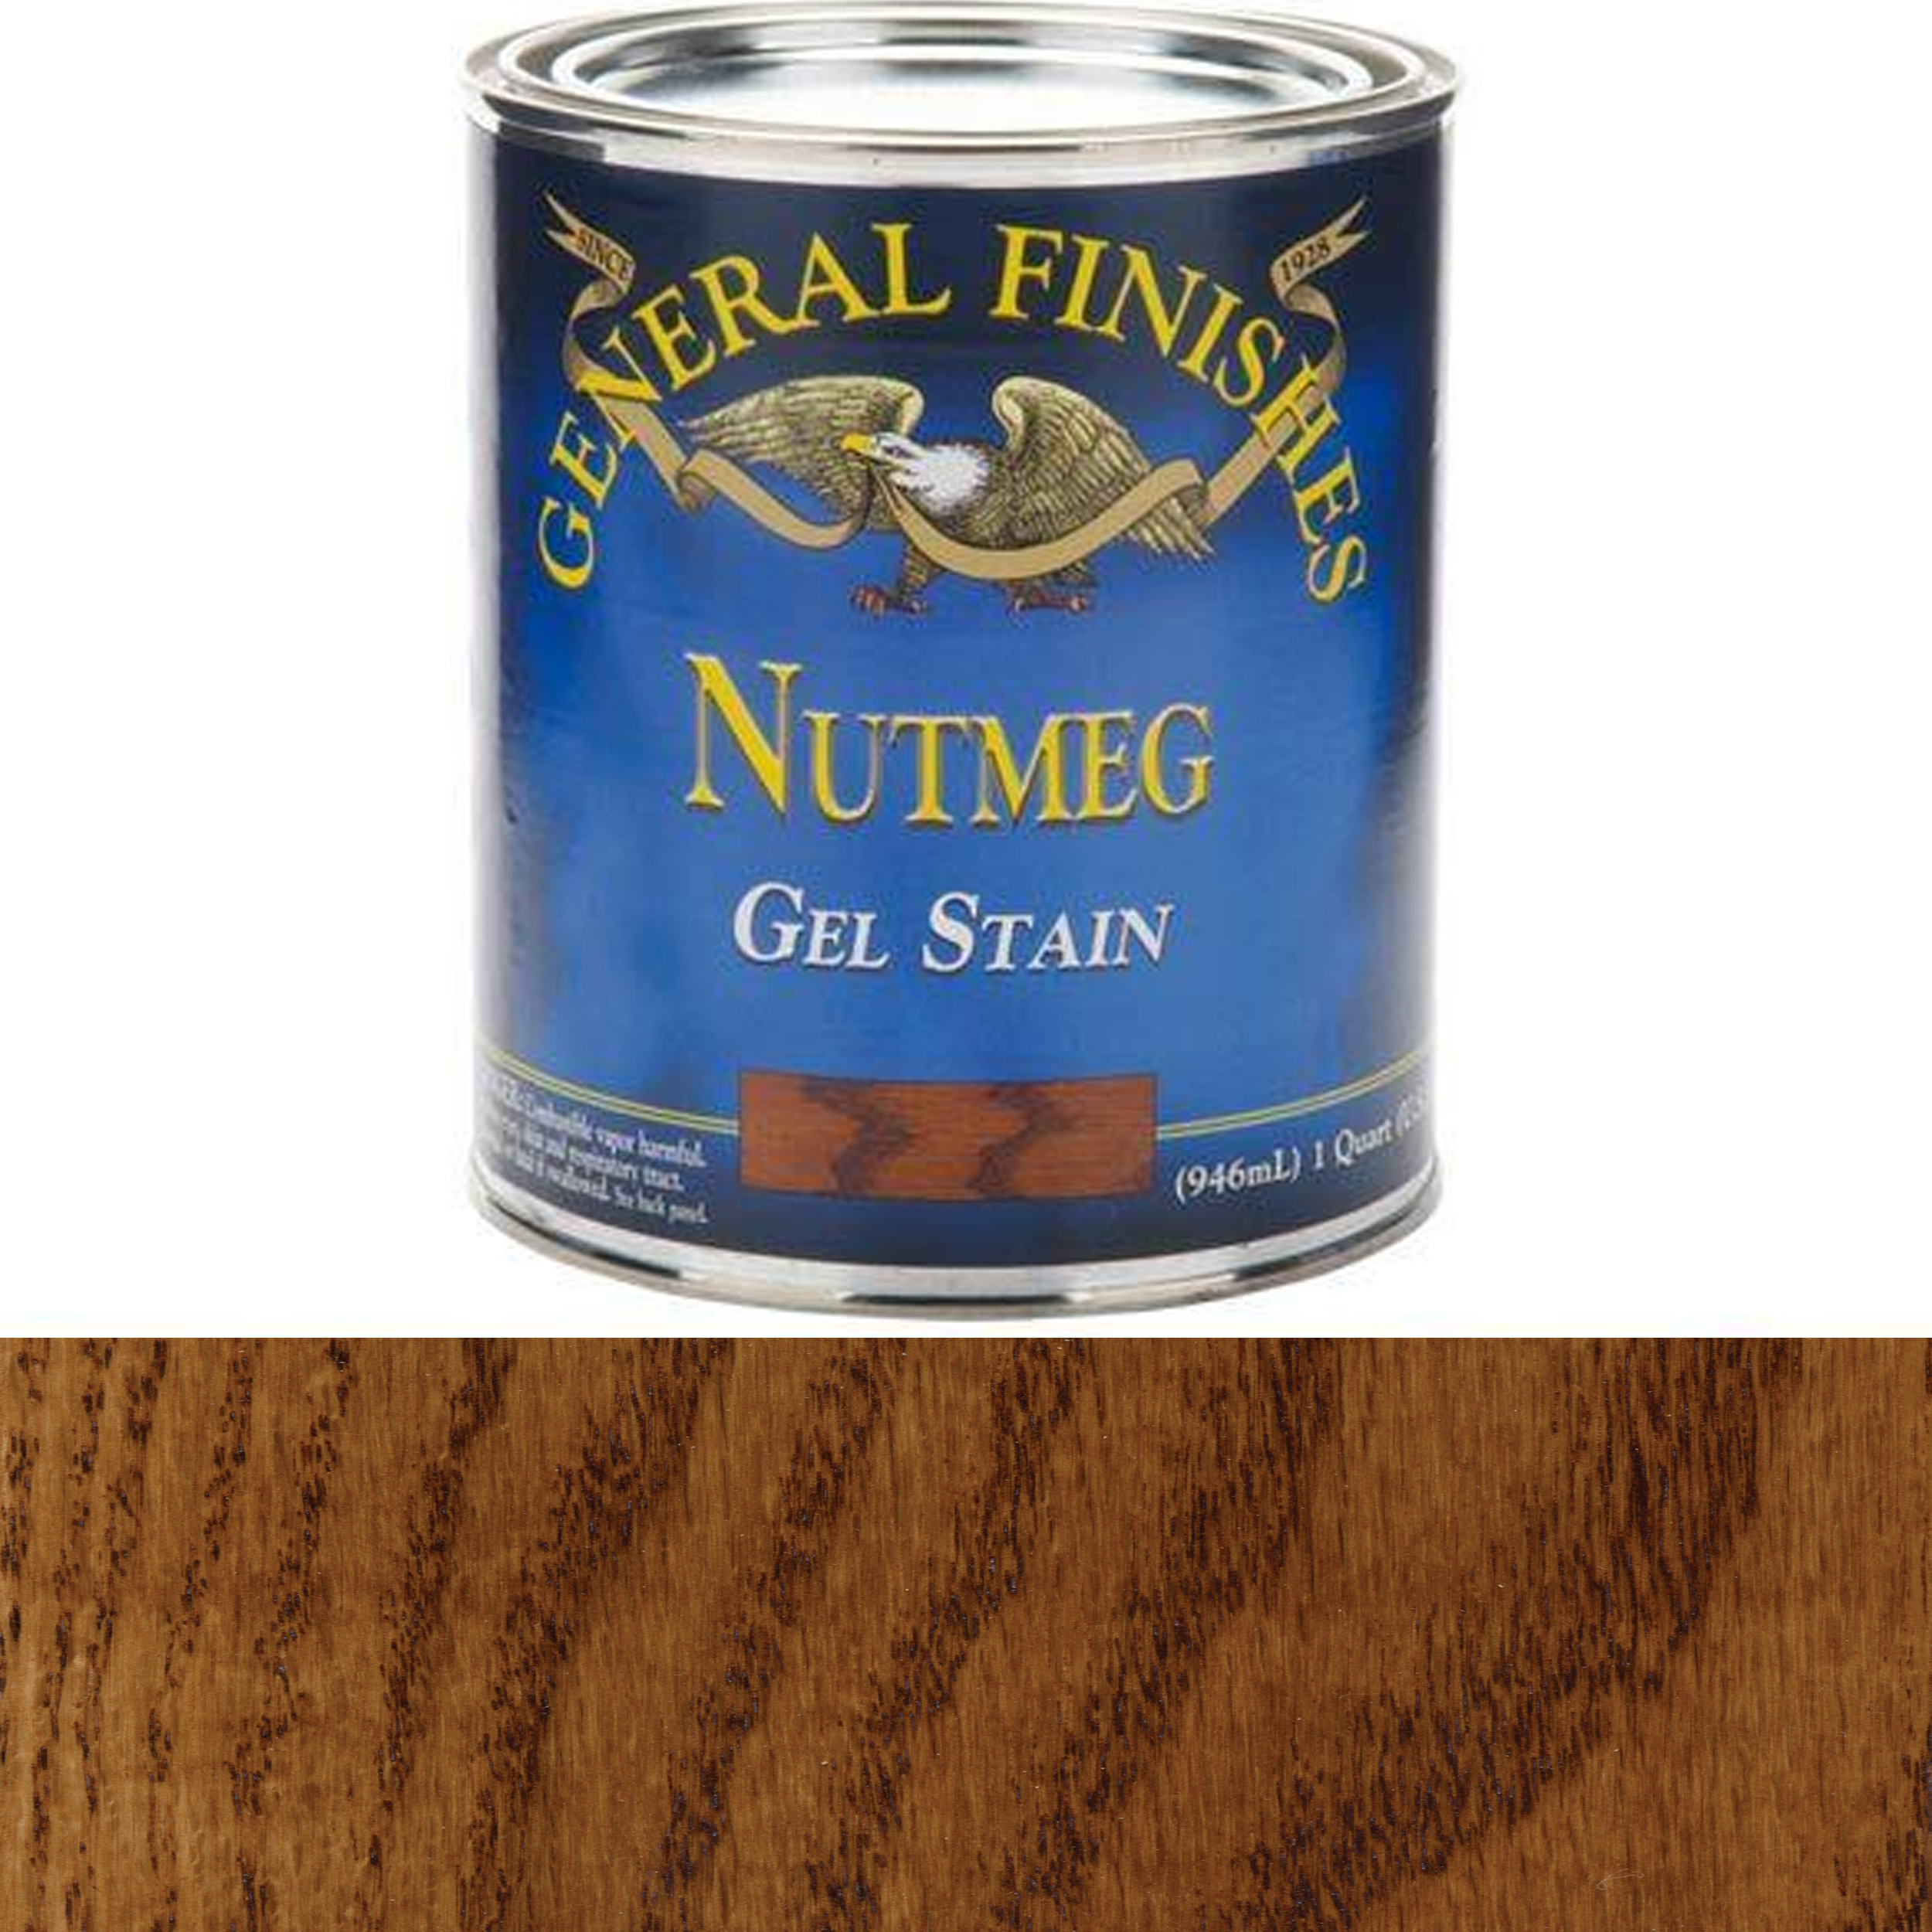 Nutmeg Gel Stain, Quart